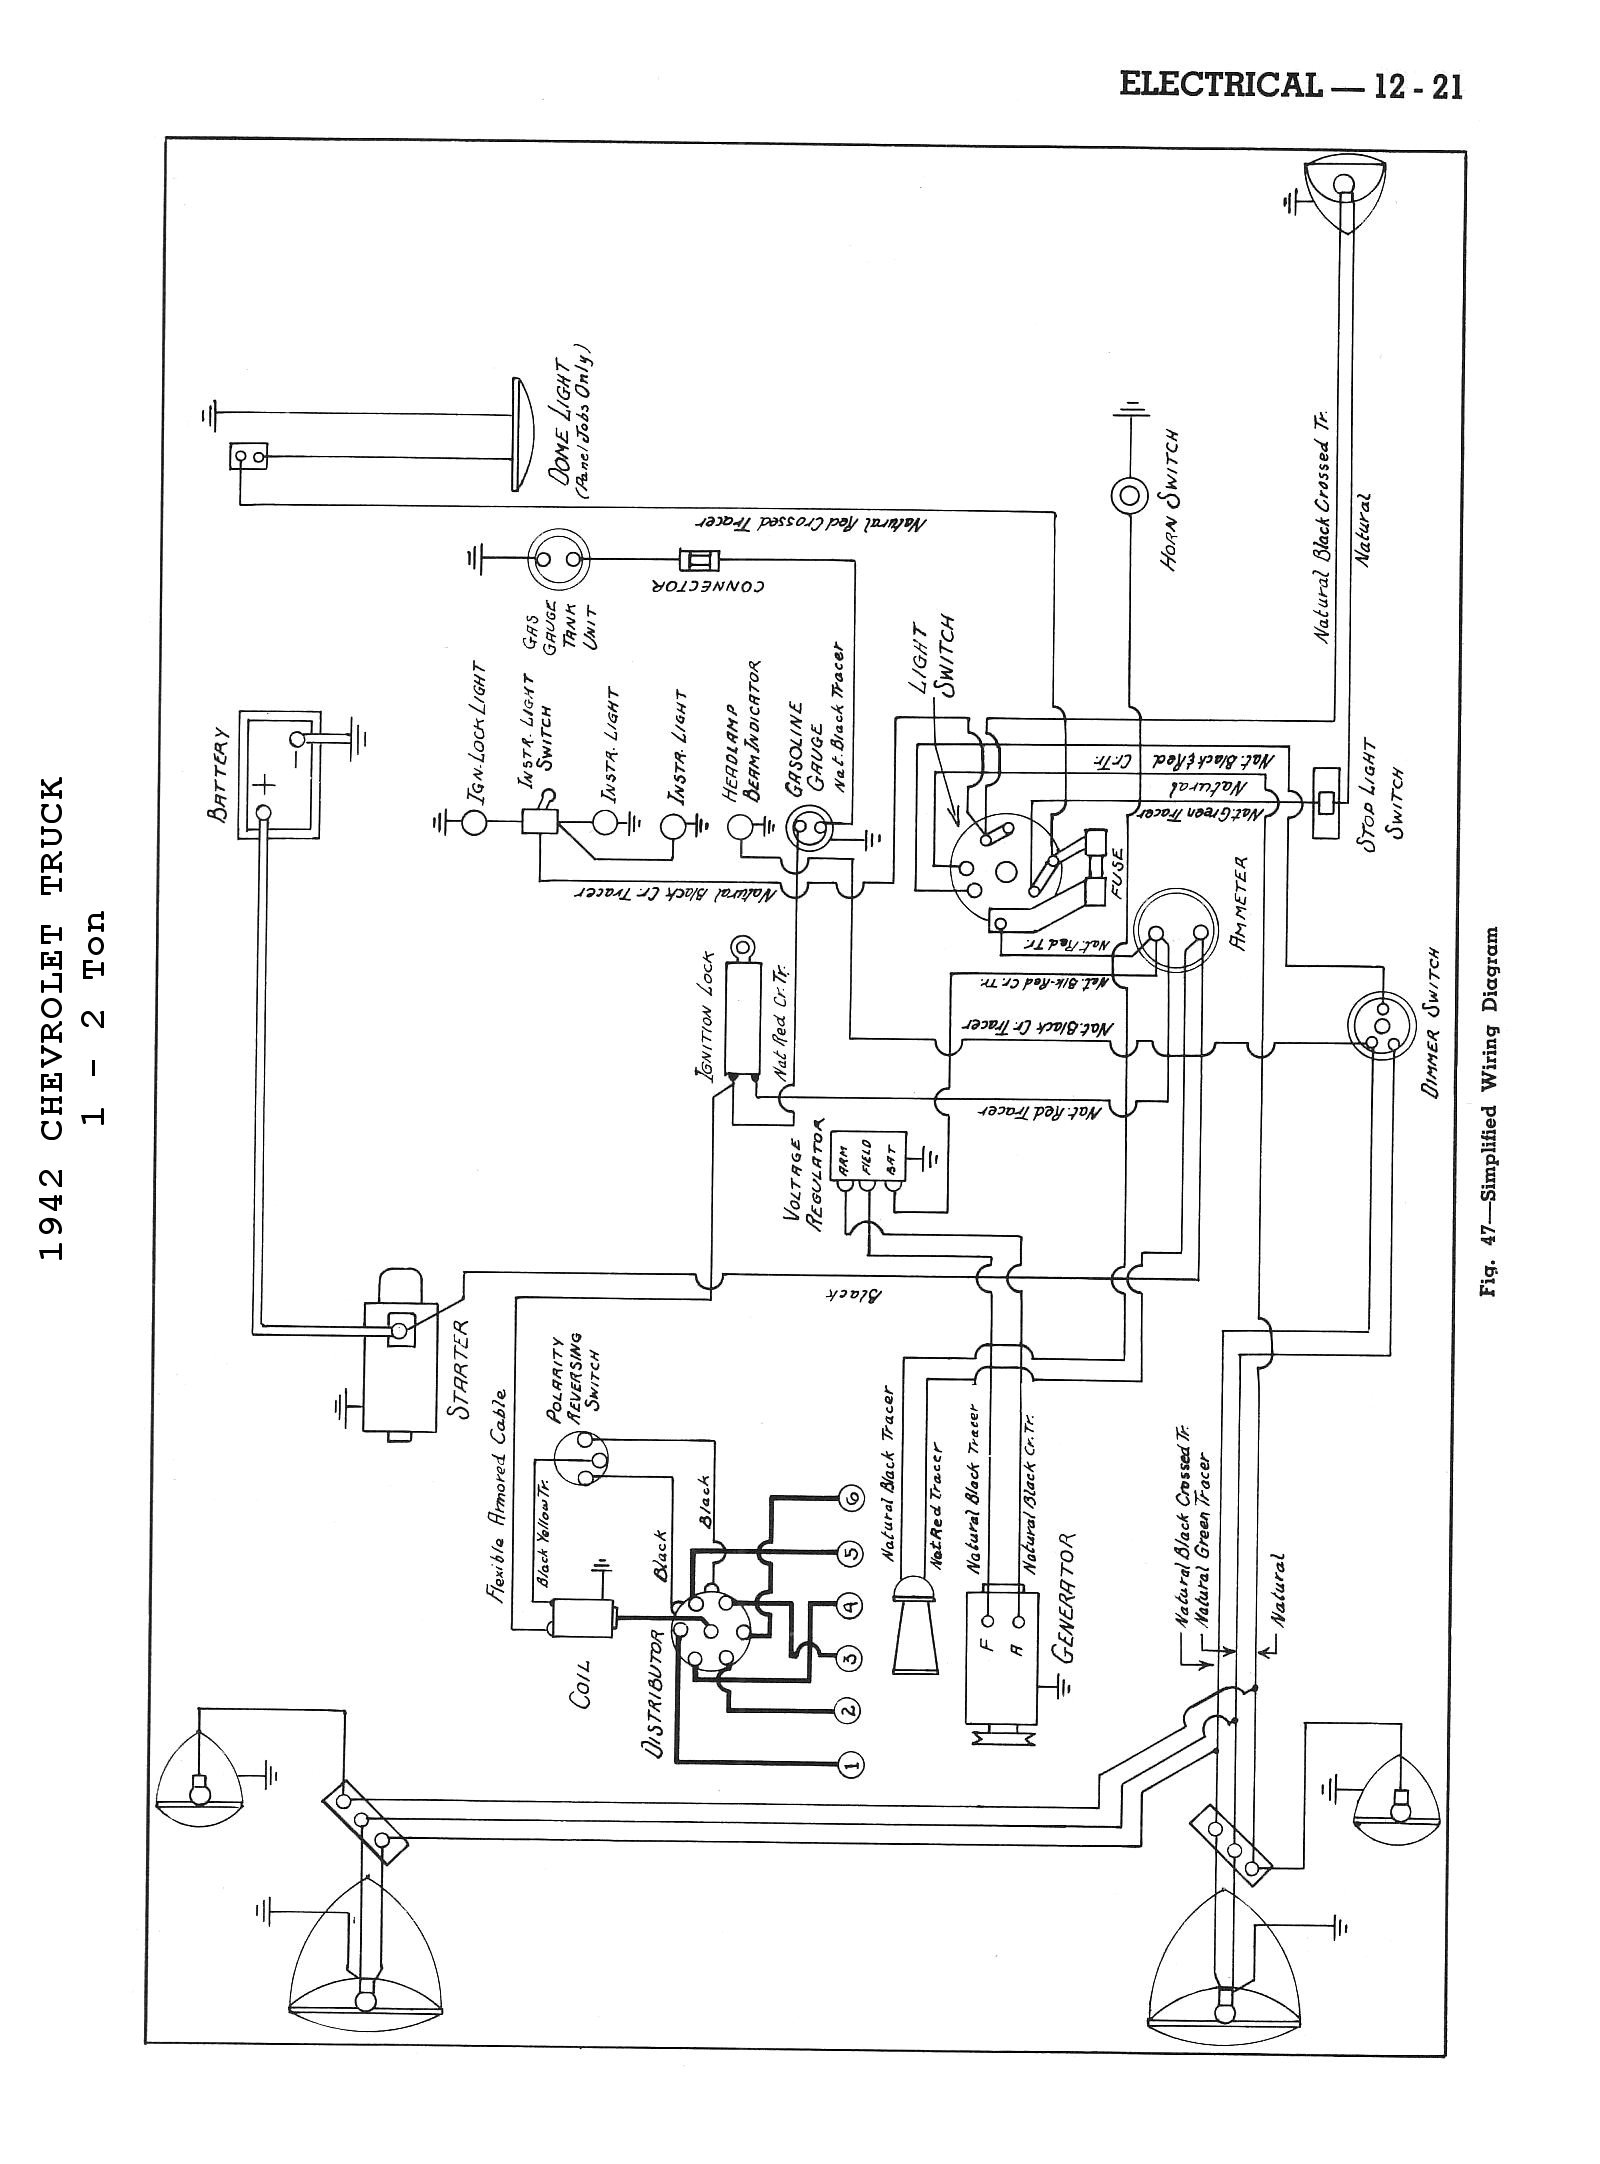 hight resolution of whirlpool dryer wiring diagram 22000ayw wiring librarychevy wiring diagrams rh chevy oldcarmanualproject com